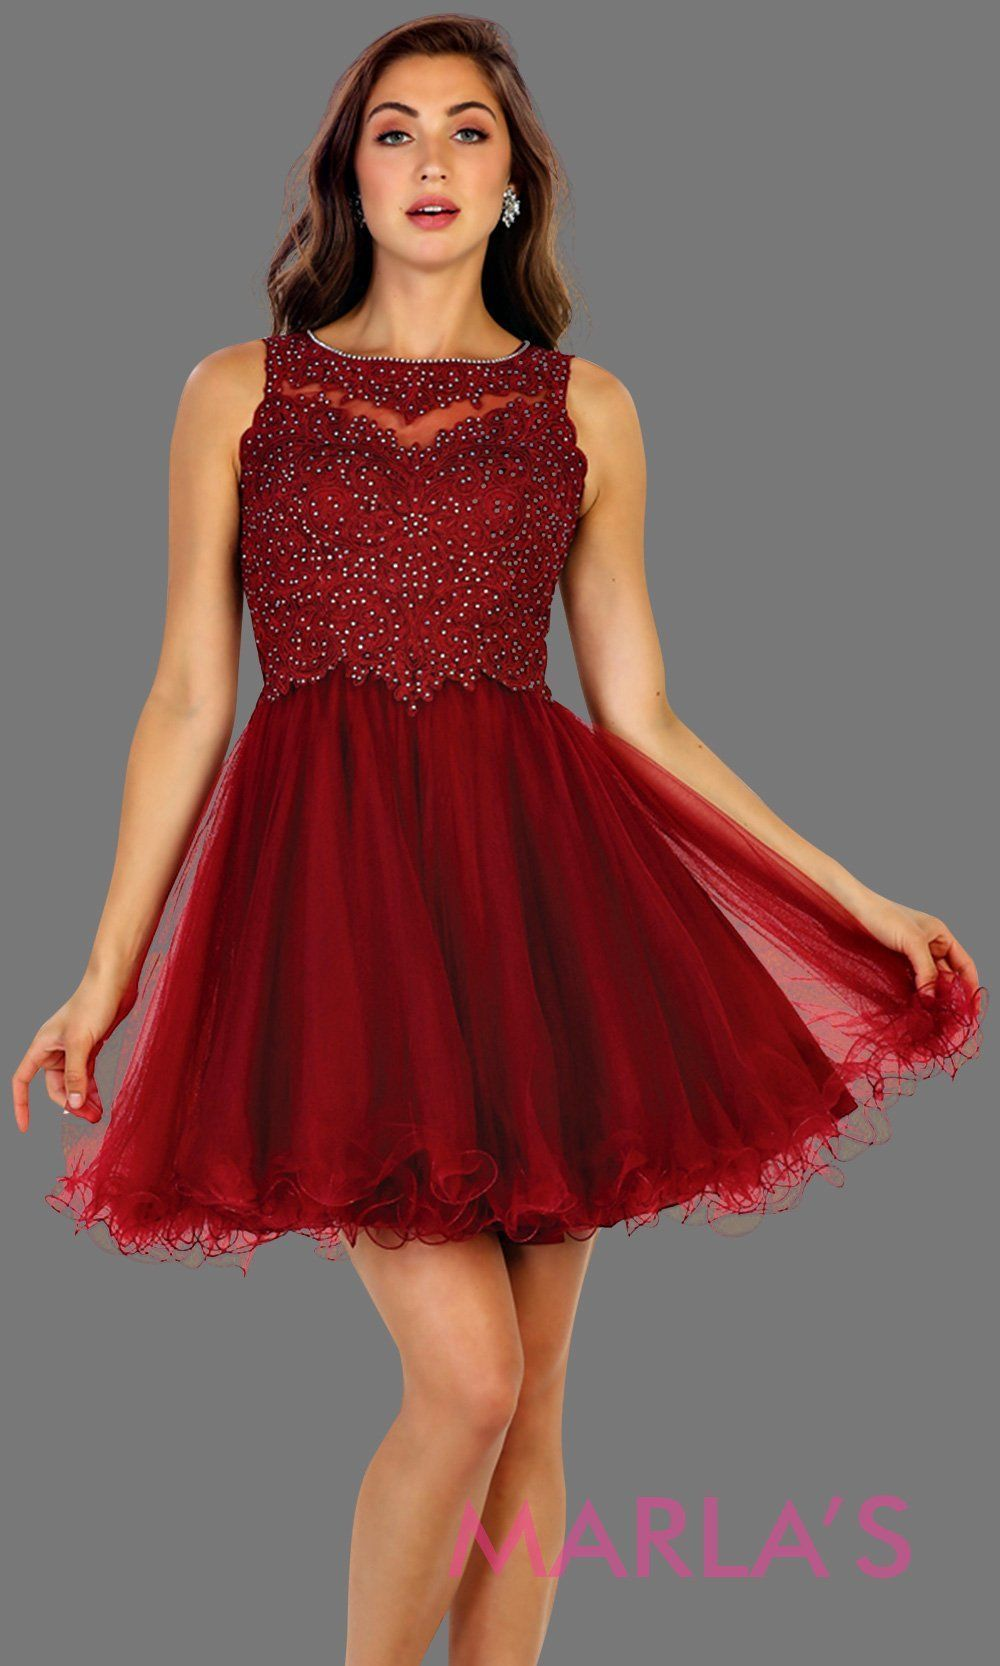 2a7cbb3199738 Short high neck puffy burgundy dress with lace top. Perfect for grade 8  grad, graduation, dark red confirmation, short prom, quinceanera damas,  sweet 16, ...